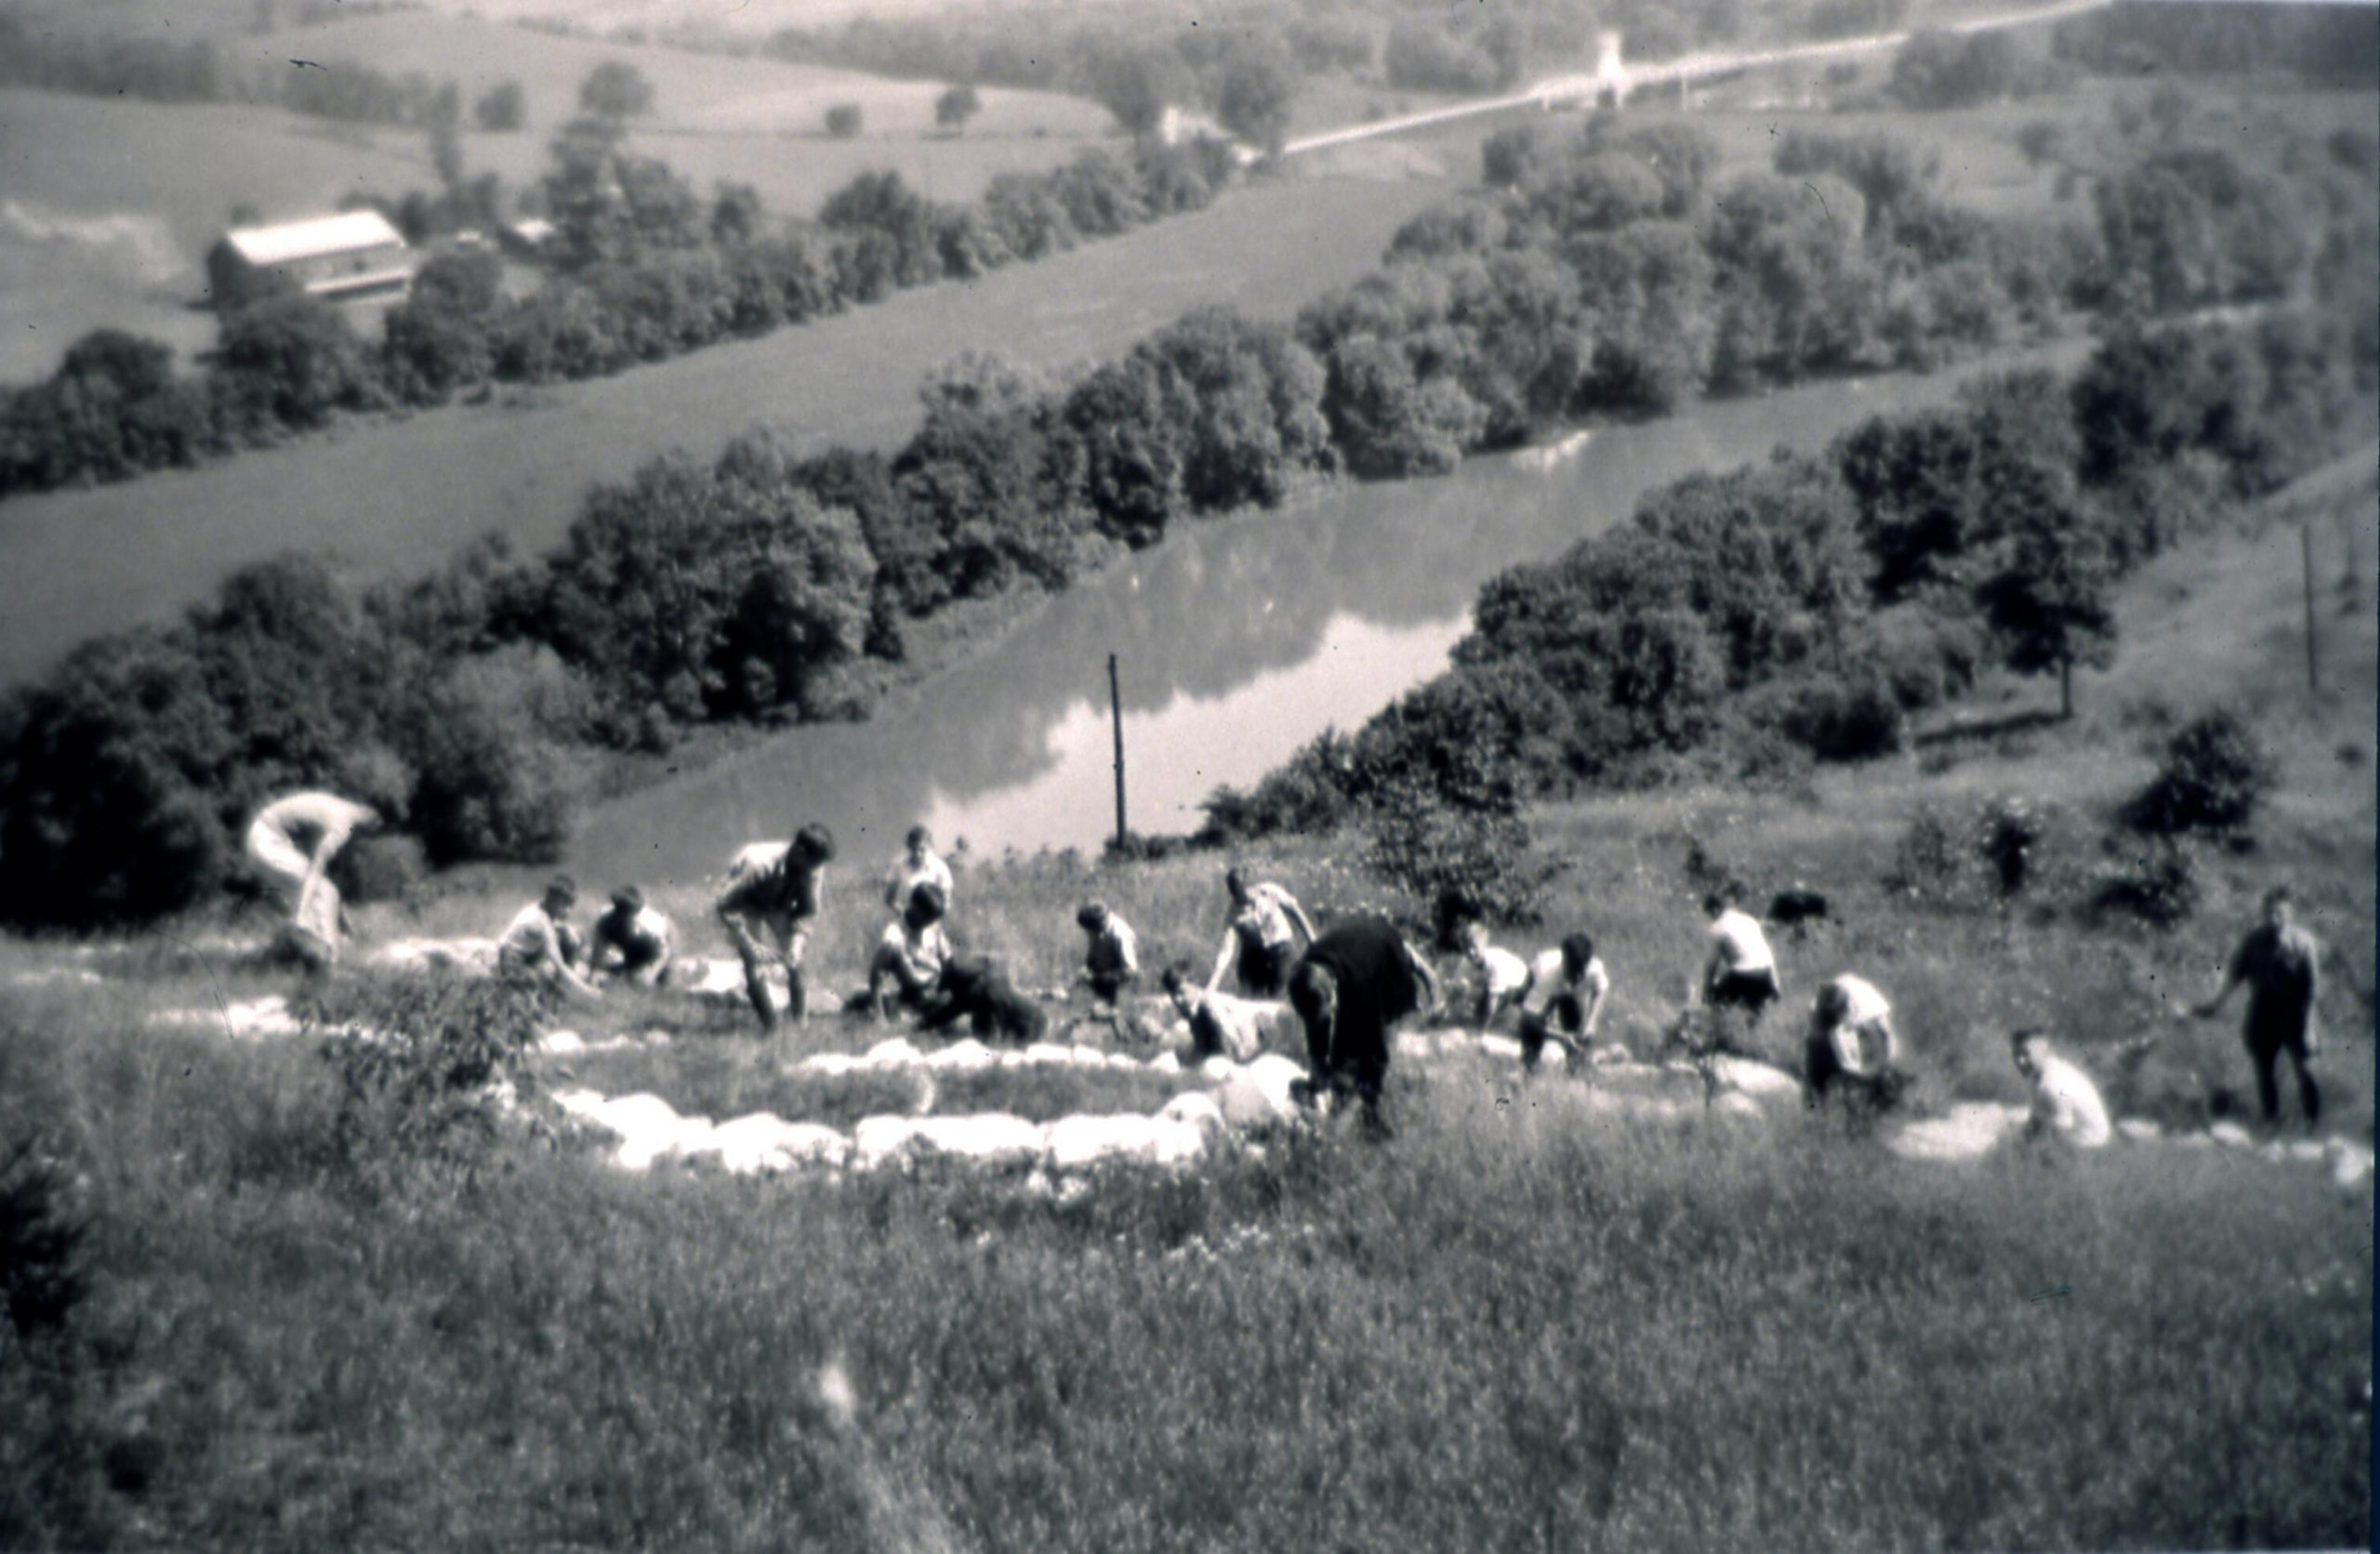 Scouts laying rocks in 1930